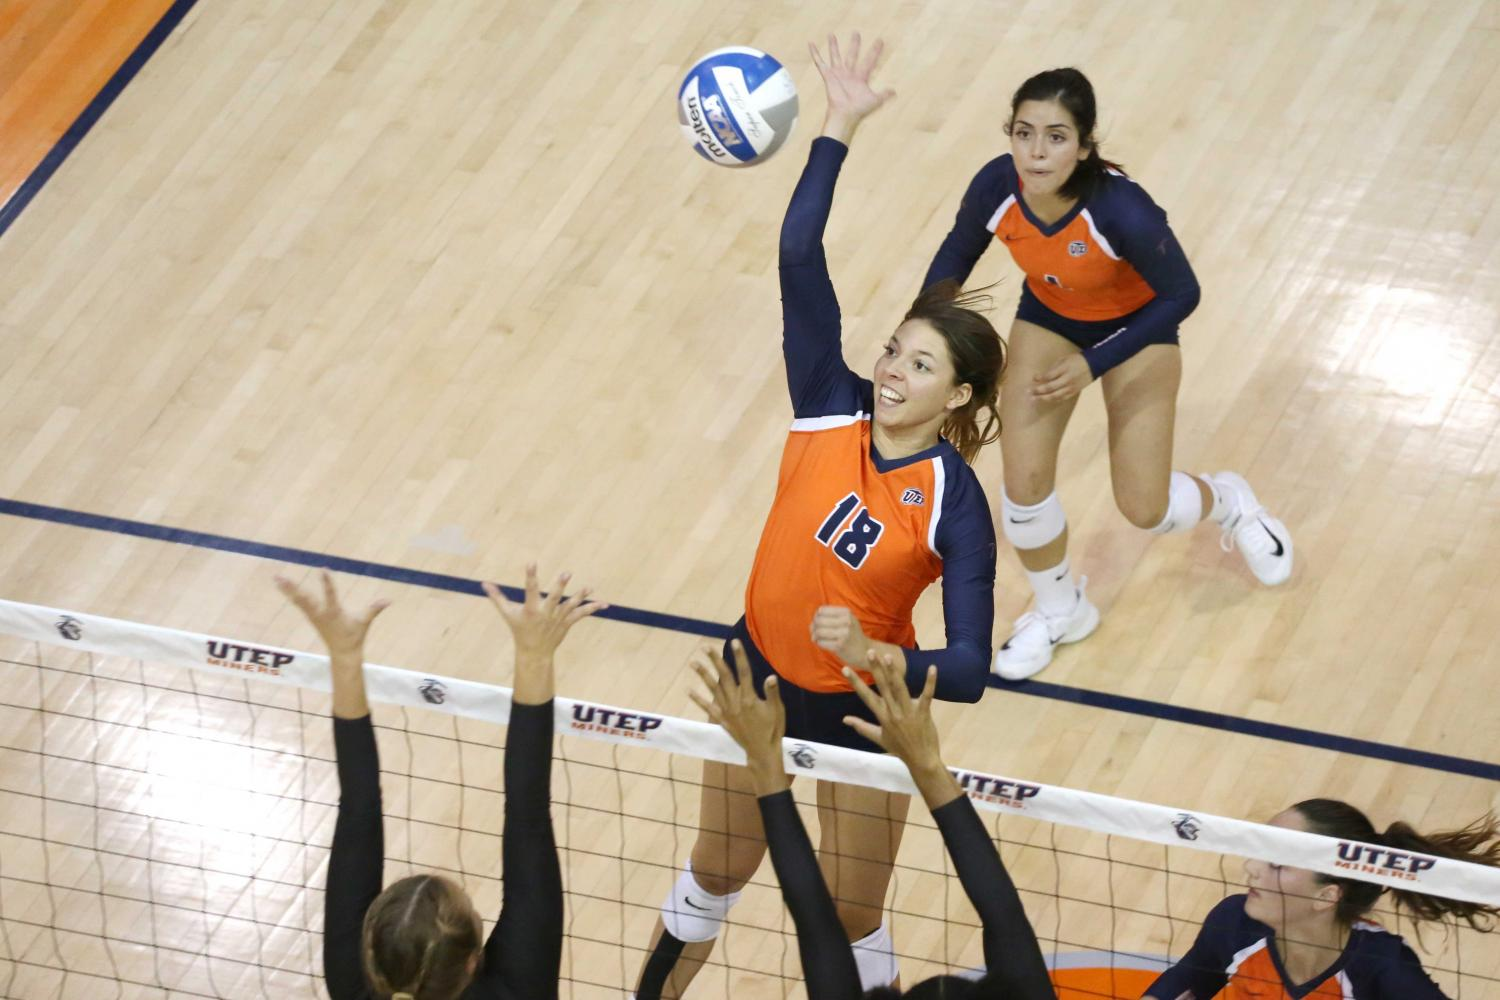 UTEP+volleyball+cruises+past+Delaware+State